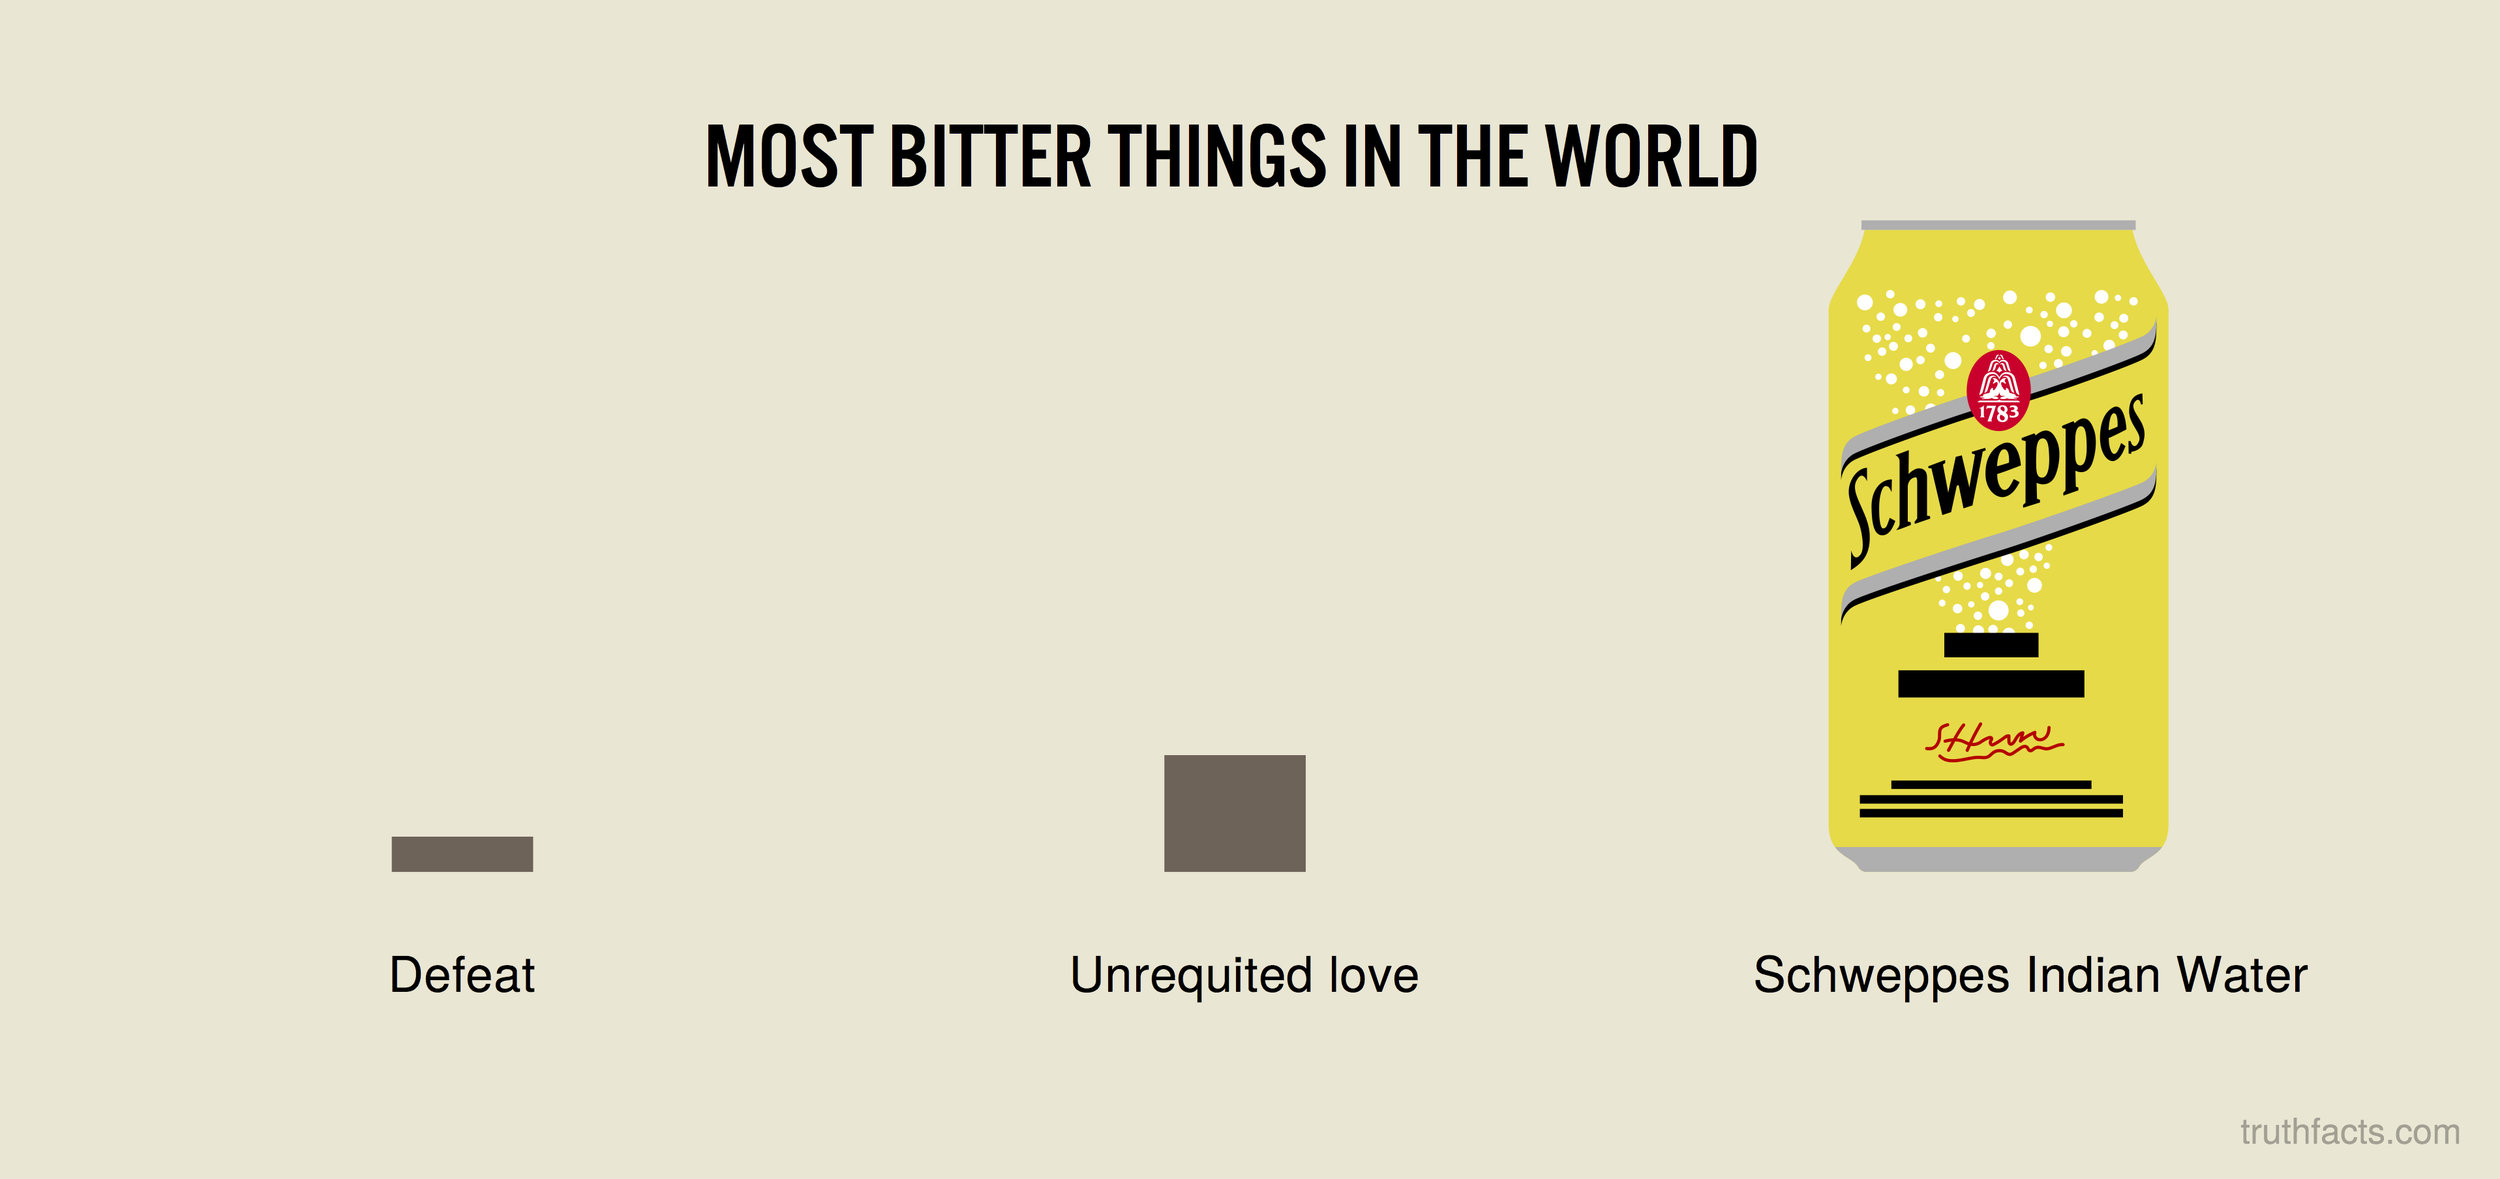 Most bitter things in the world